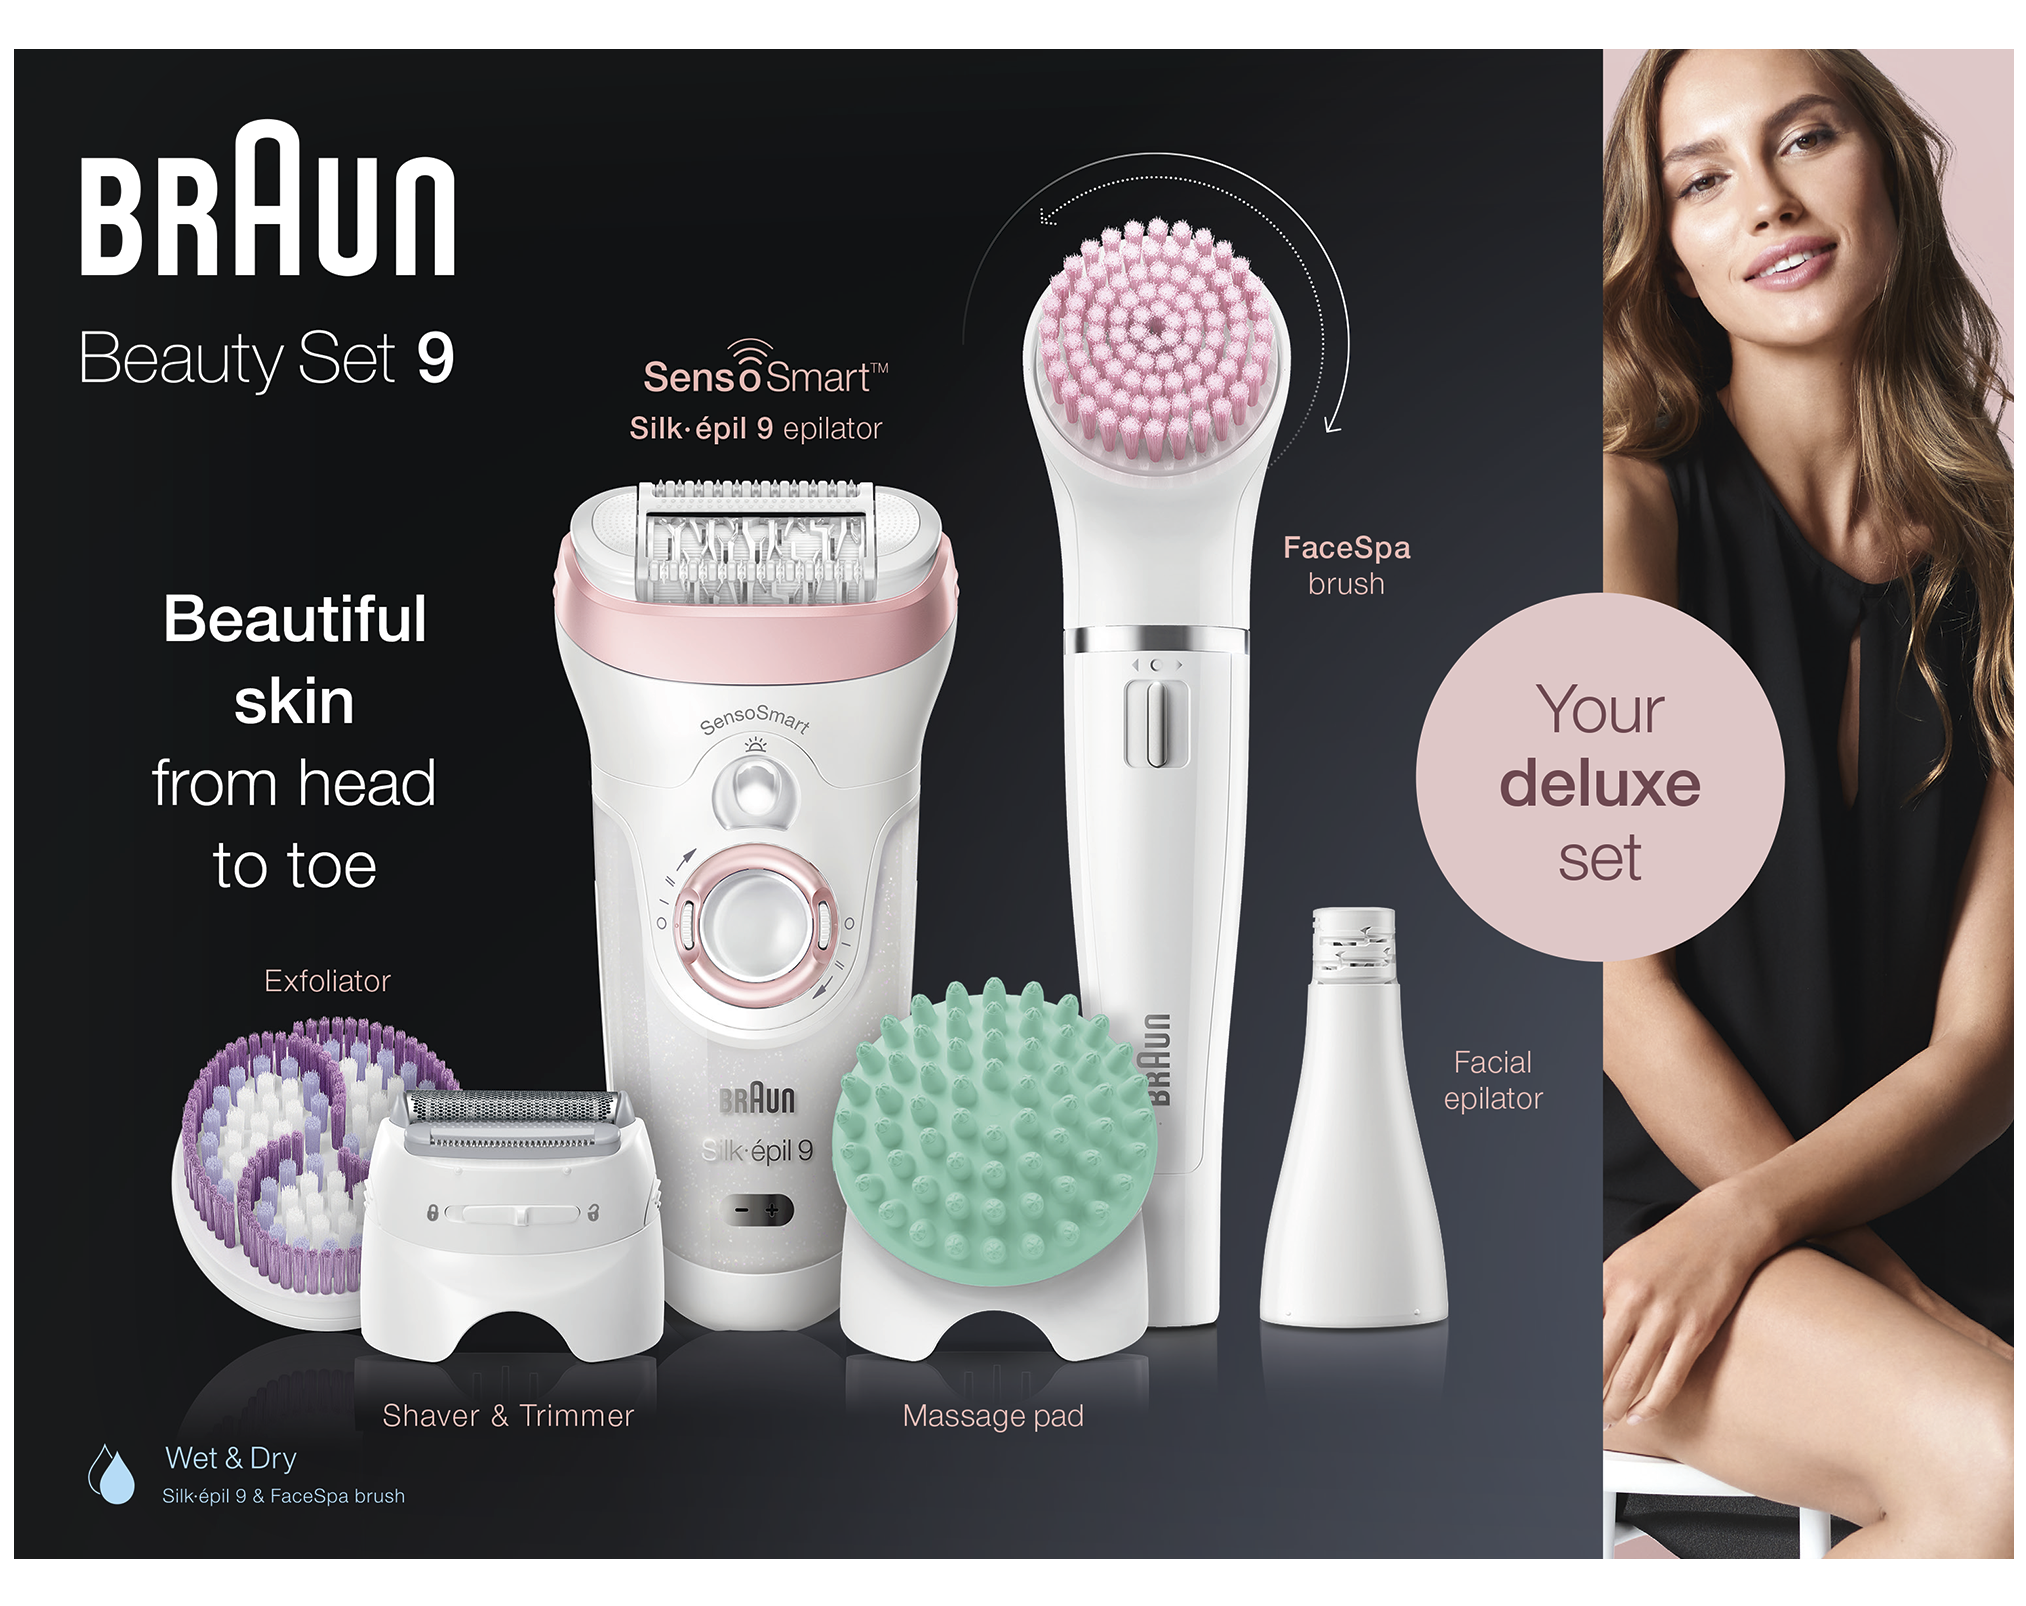 Braun beauty set 9